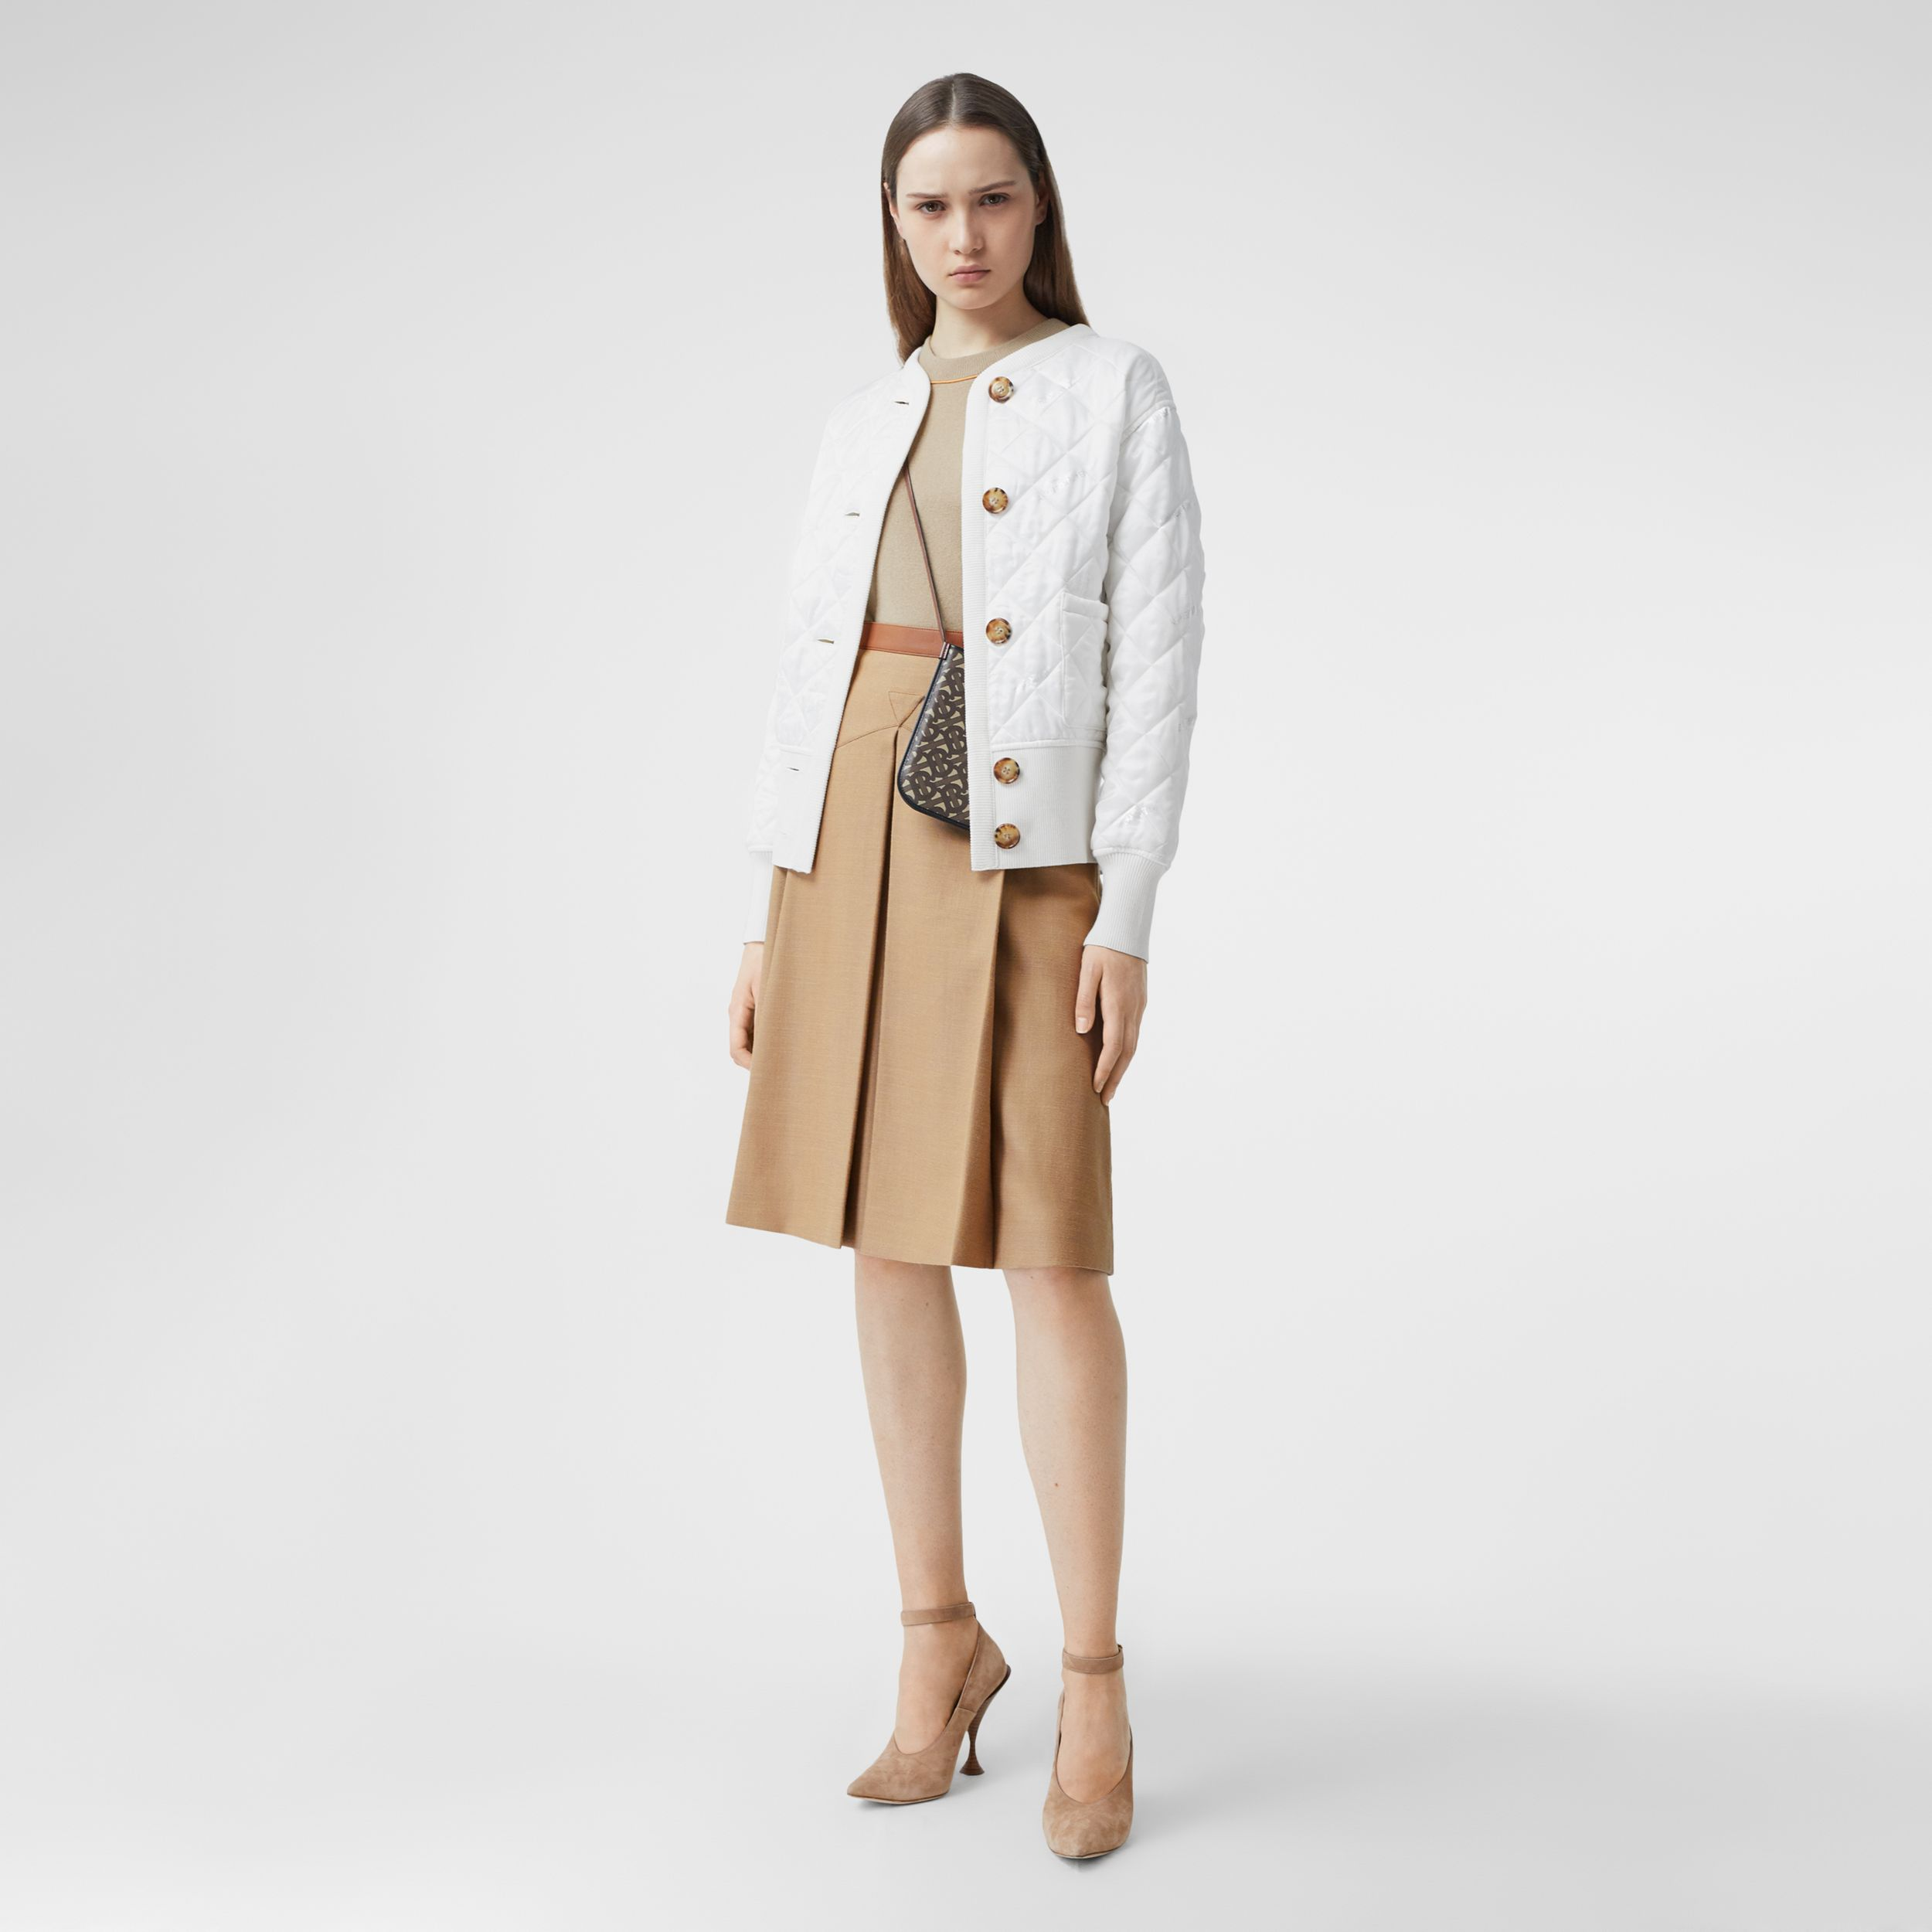 Logo Jacquard Diamond Quilted and Wool Blend Jacket in White - Women | Burberry - 1